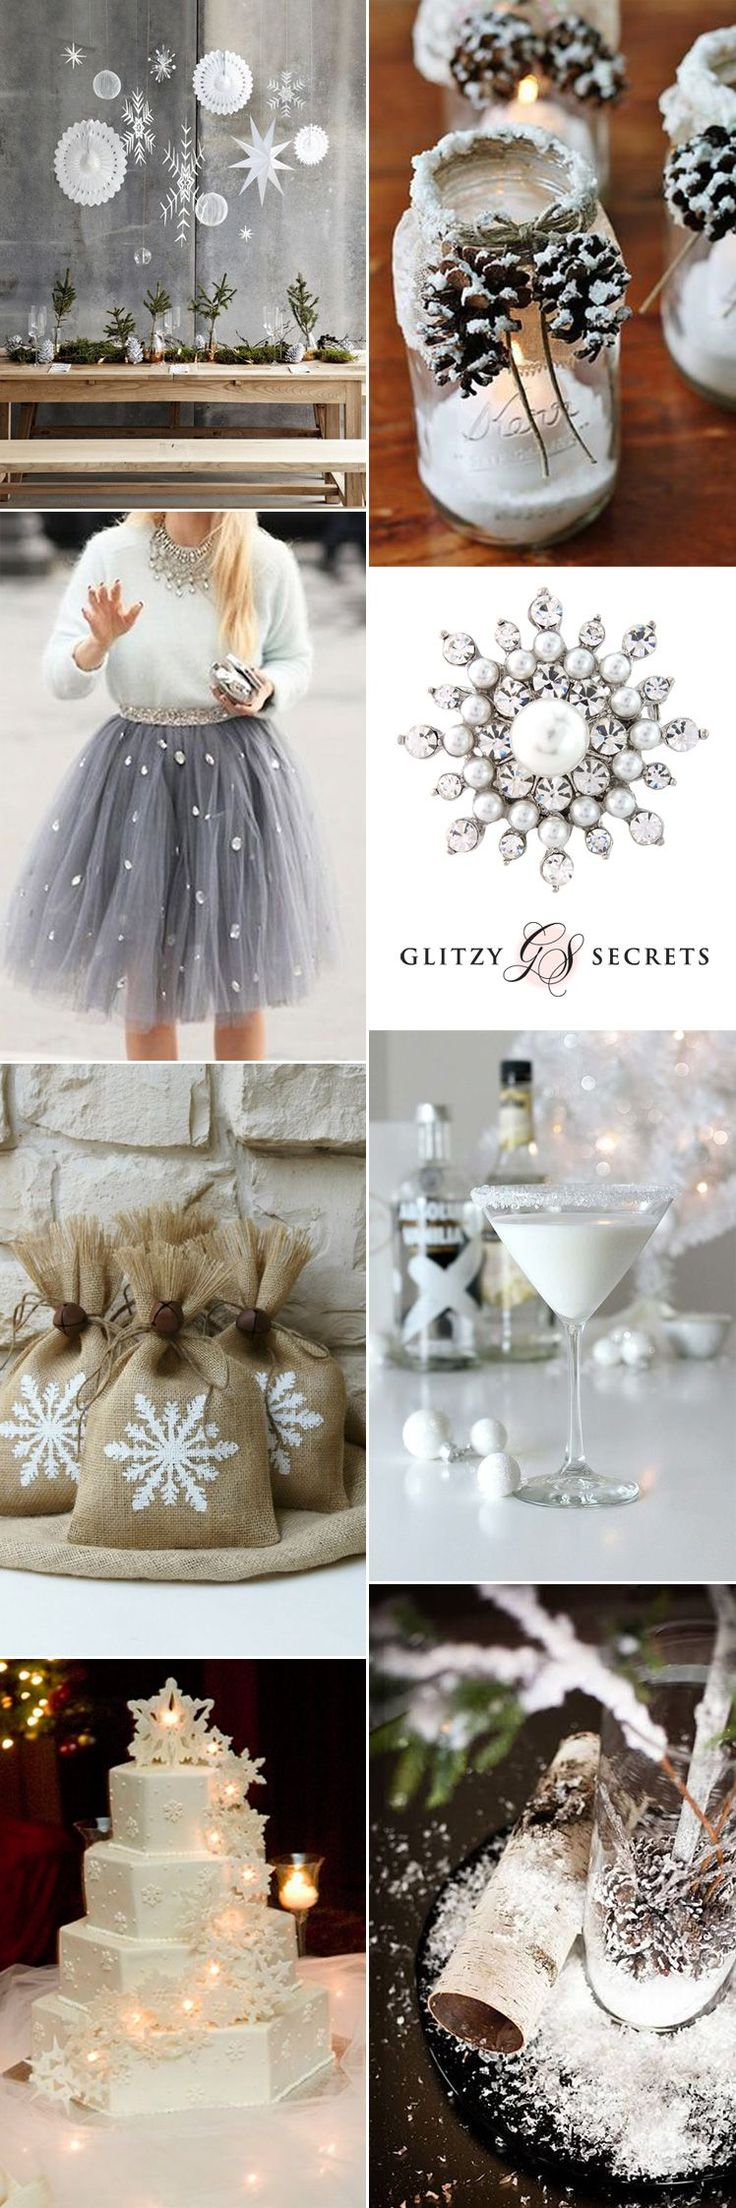 3518 best Themes For Your Wedding images on Pinterest | Wedding ...